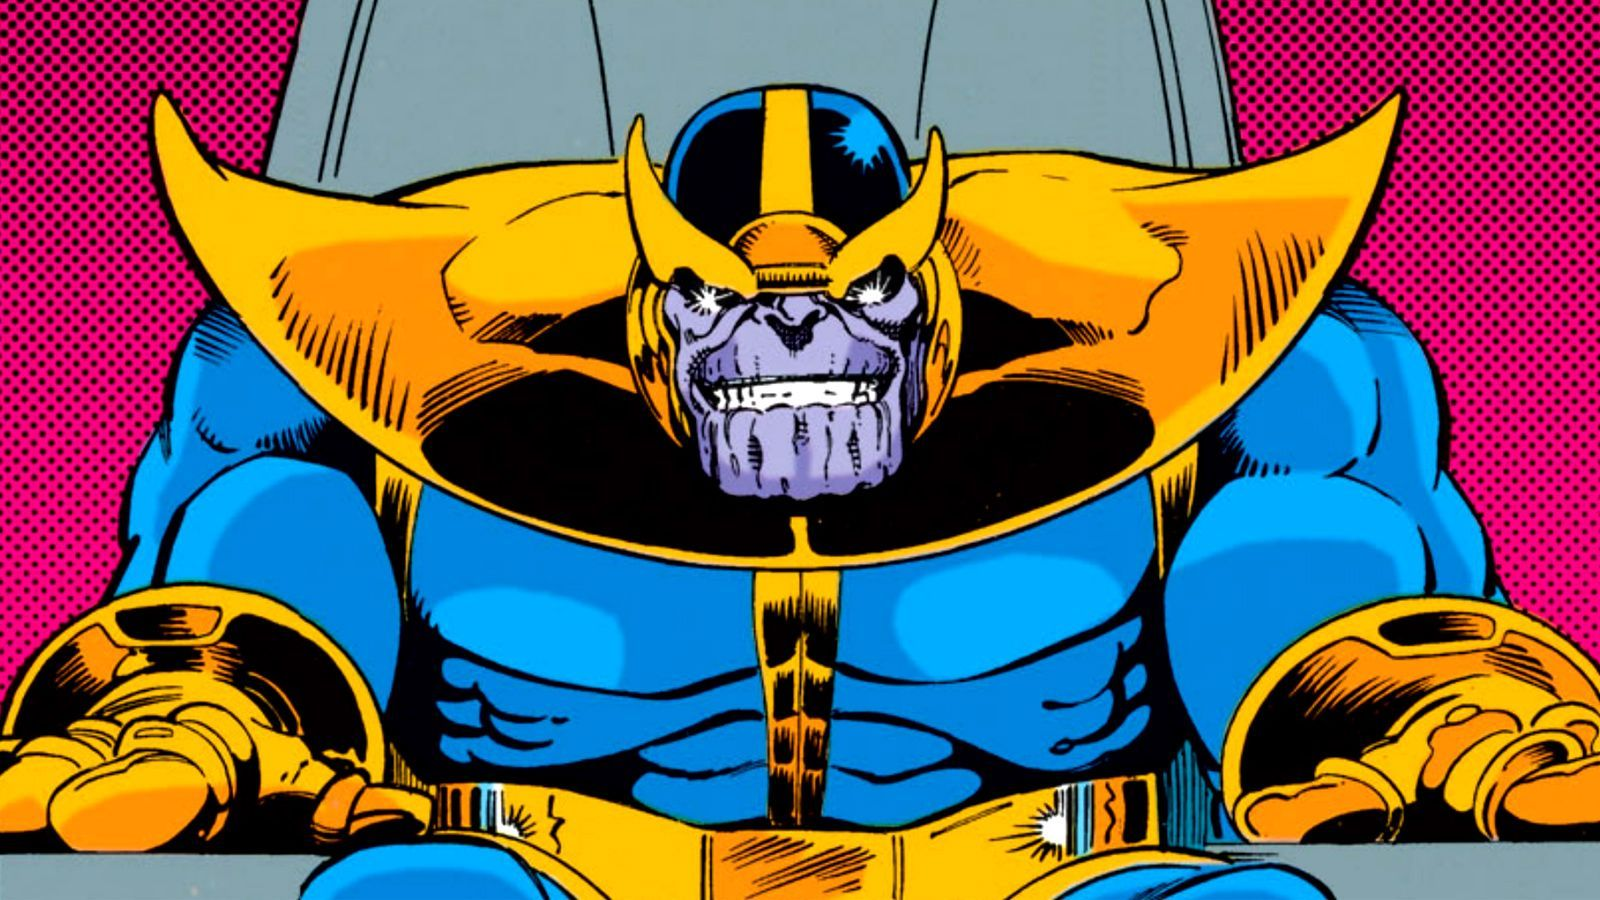 1600x900 Thanos | Marvel Villains Phreek: Thanos | Pinterest | Marvel ...